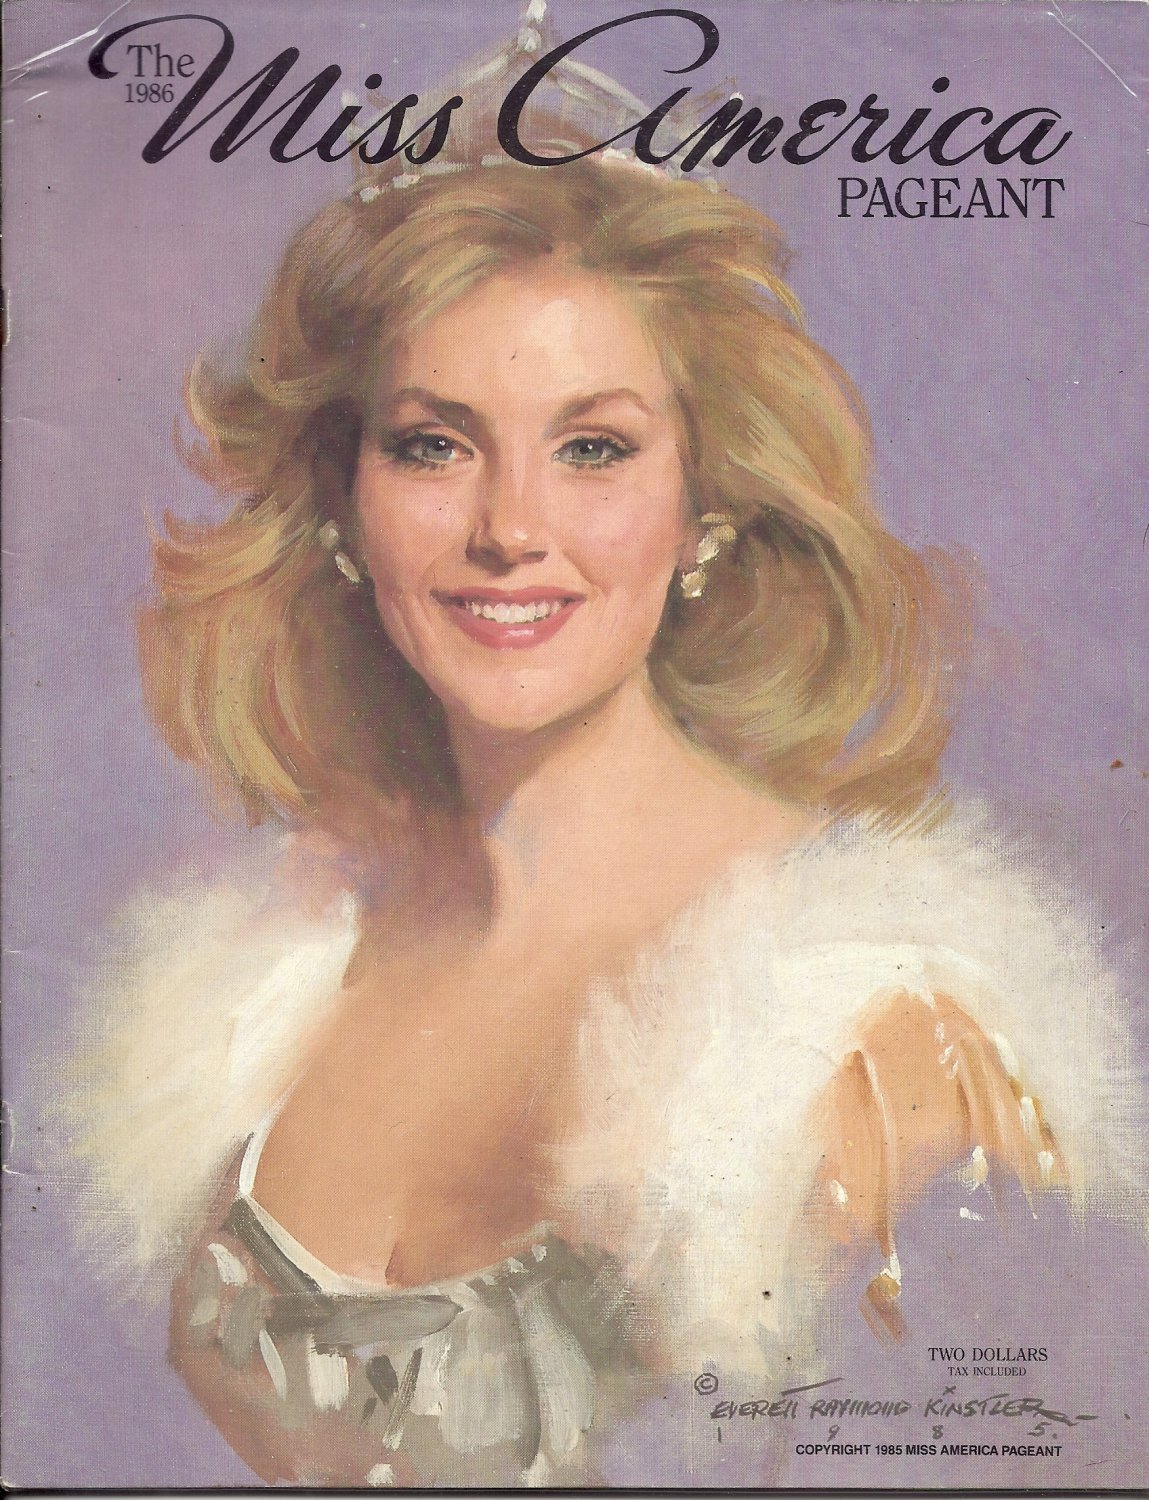 1986 Vintage Magazine Program: The Miss America Pageant 1986